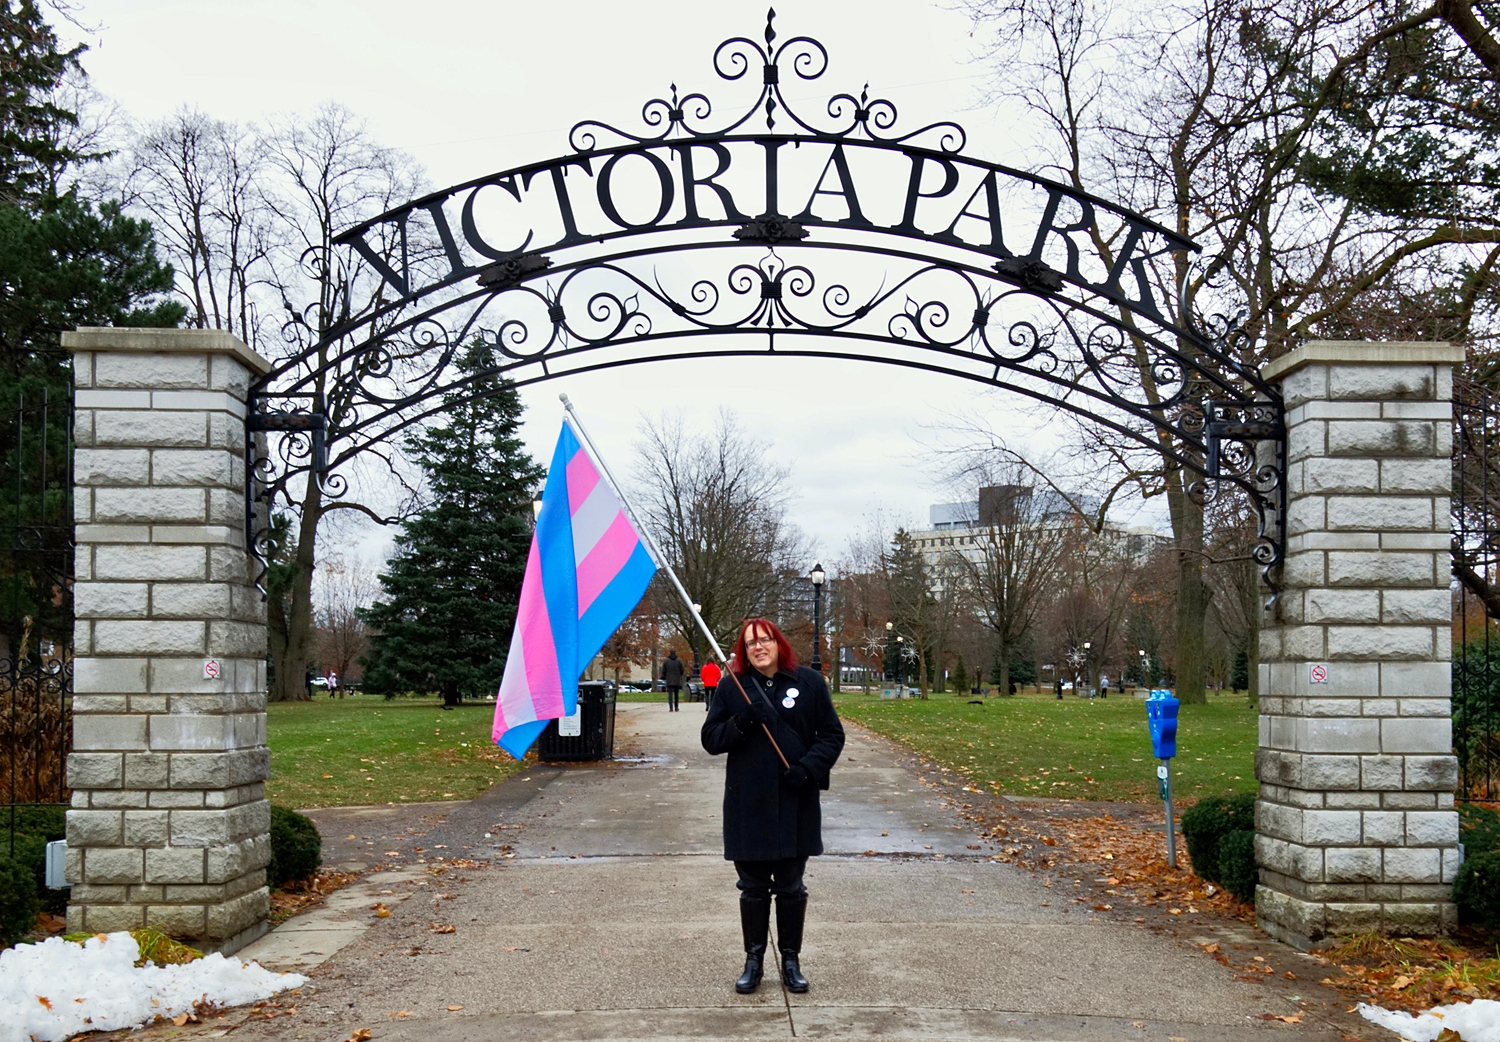 Desiree Terrevonne at the gates of Victoria Park. Photo by Thomas Davies.